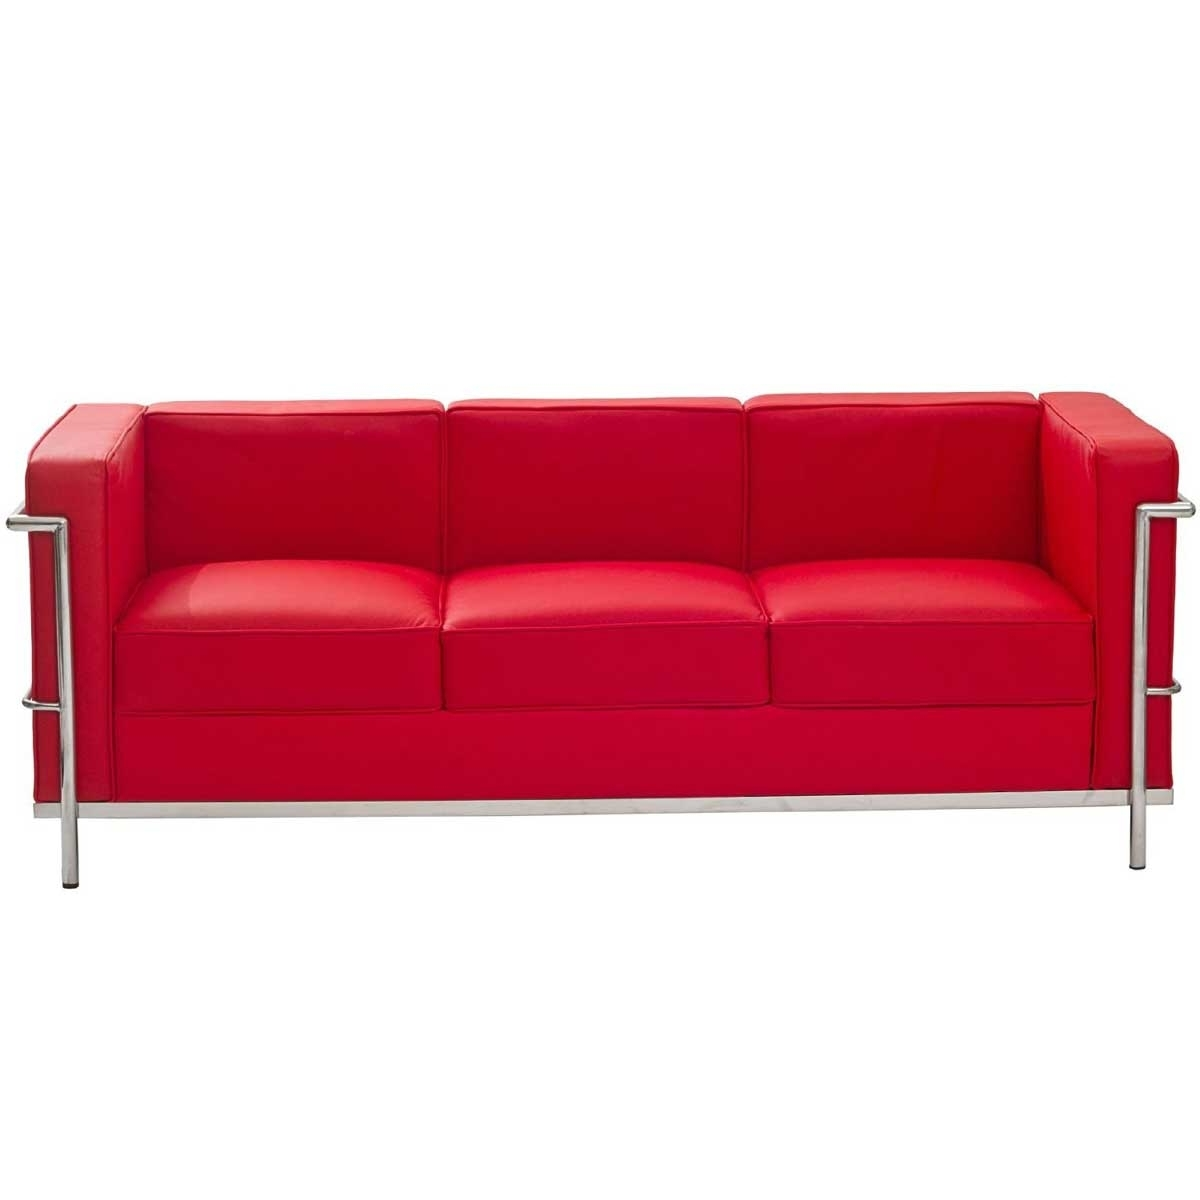 Red Sofa Chairs Within Well Known Interior : Red Sofa And Loveseat Leather Interior Furniture (View 16 of 20)